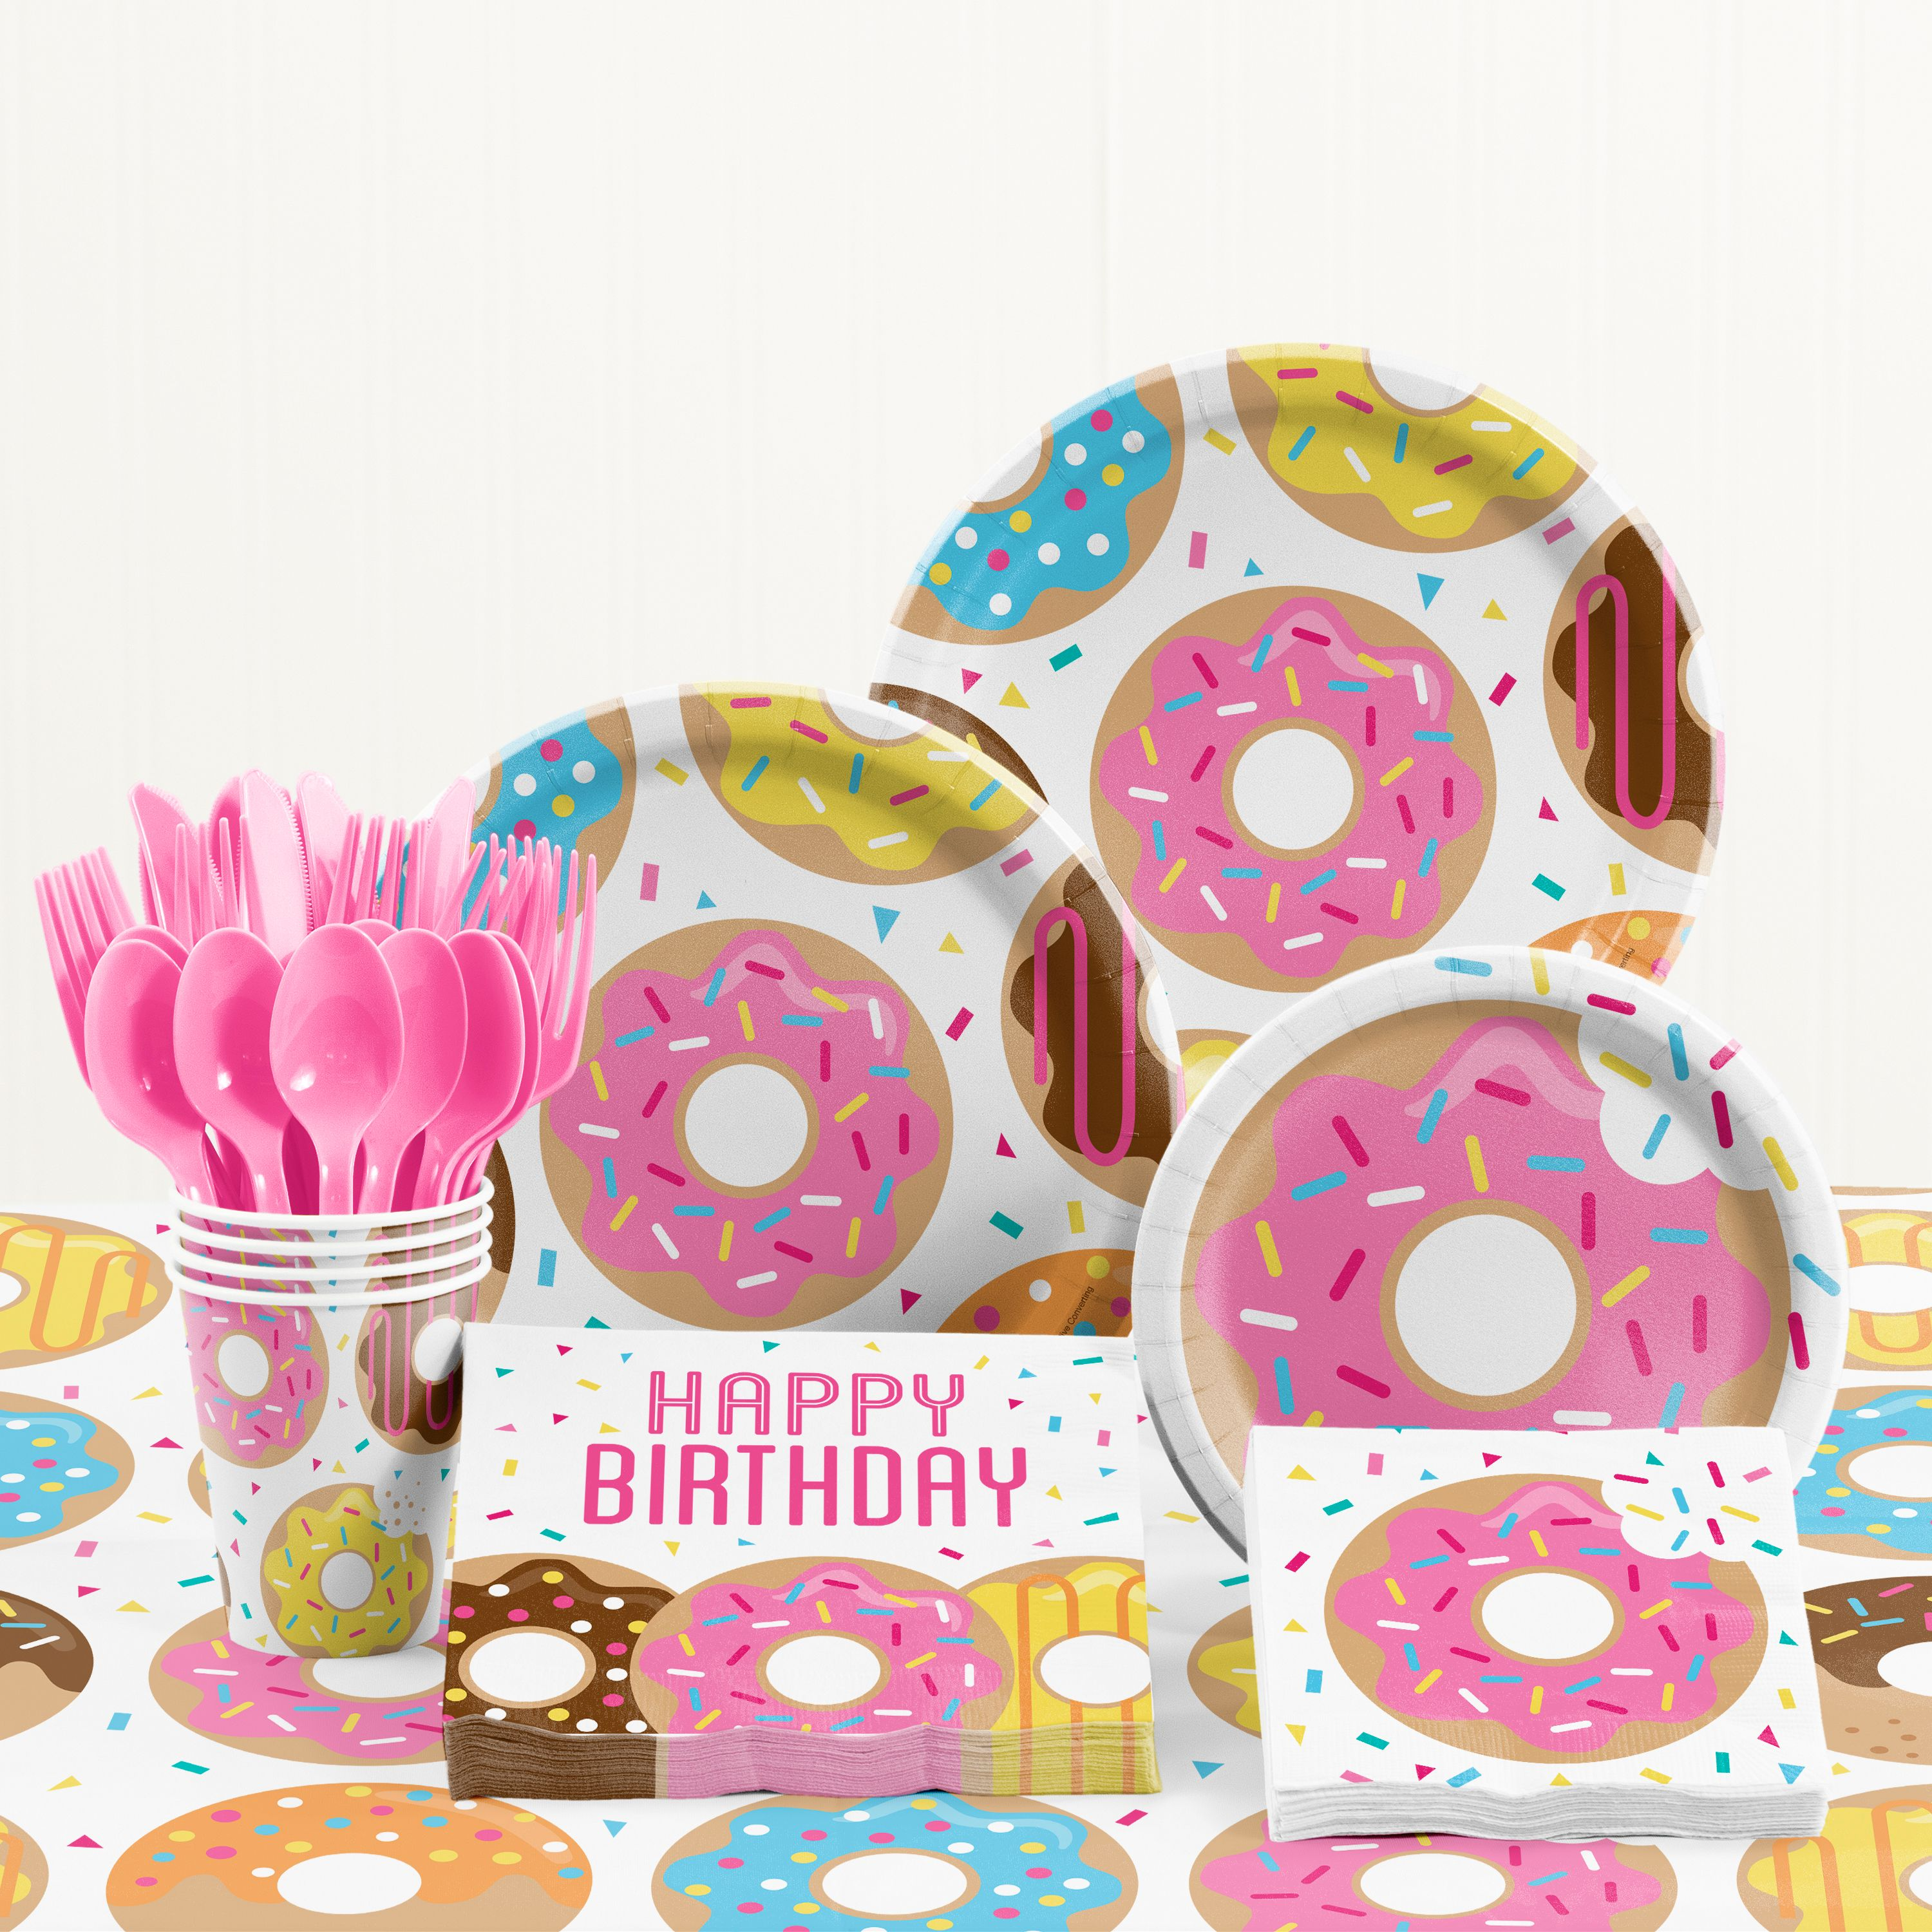 Donut Time Birthday Party Supplies Kit